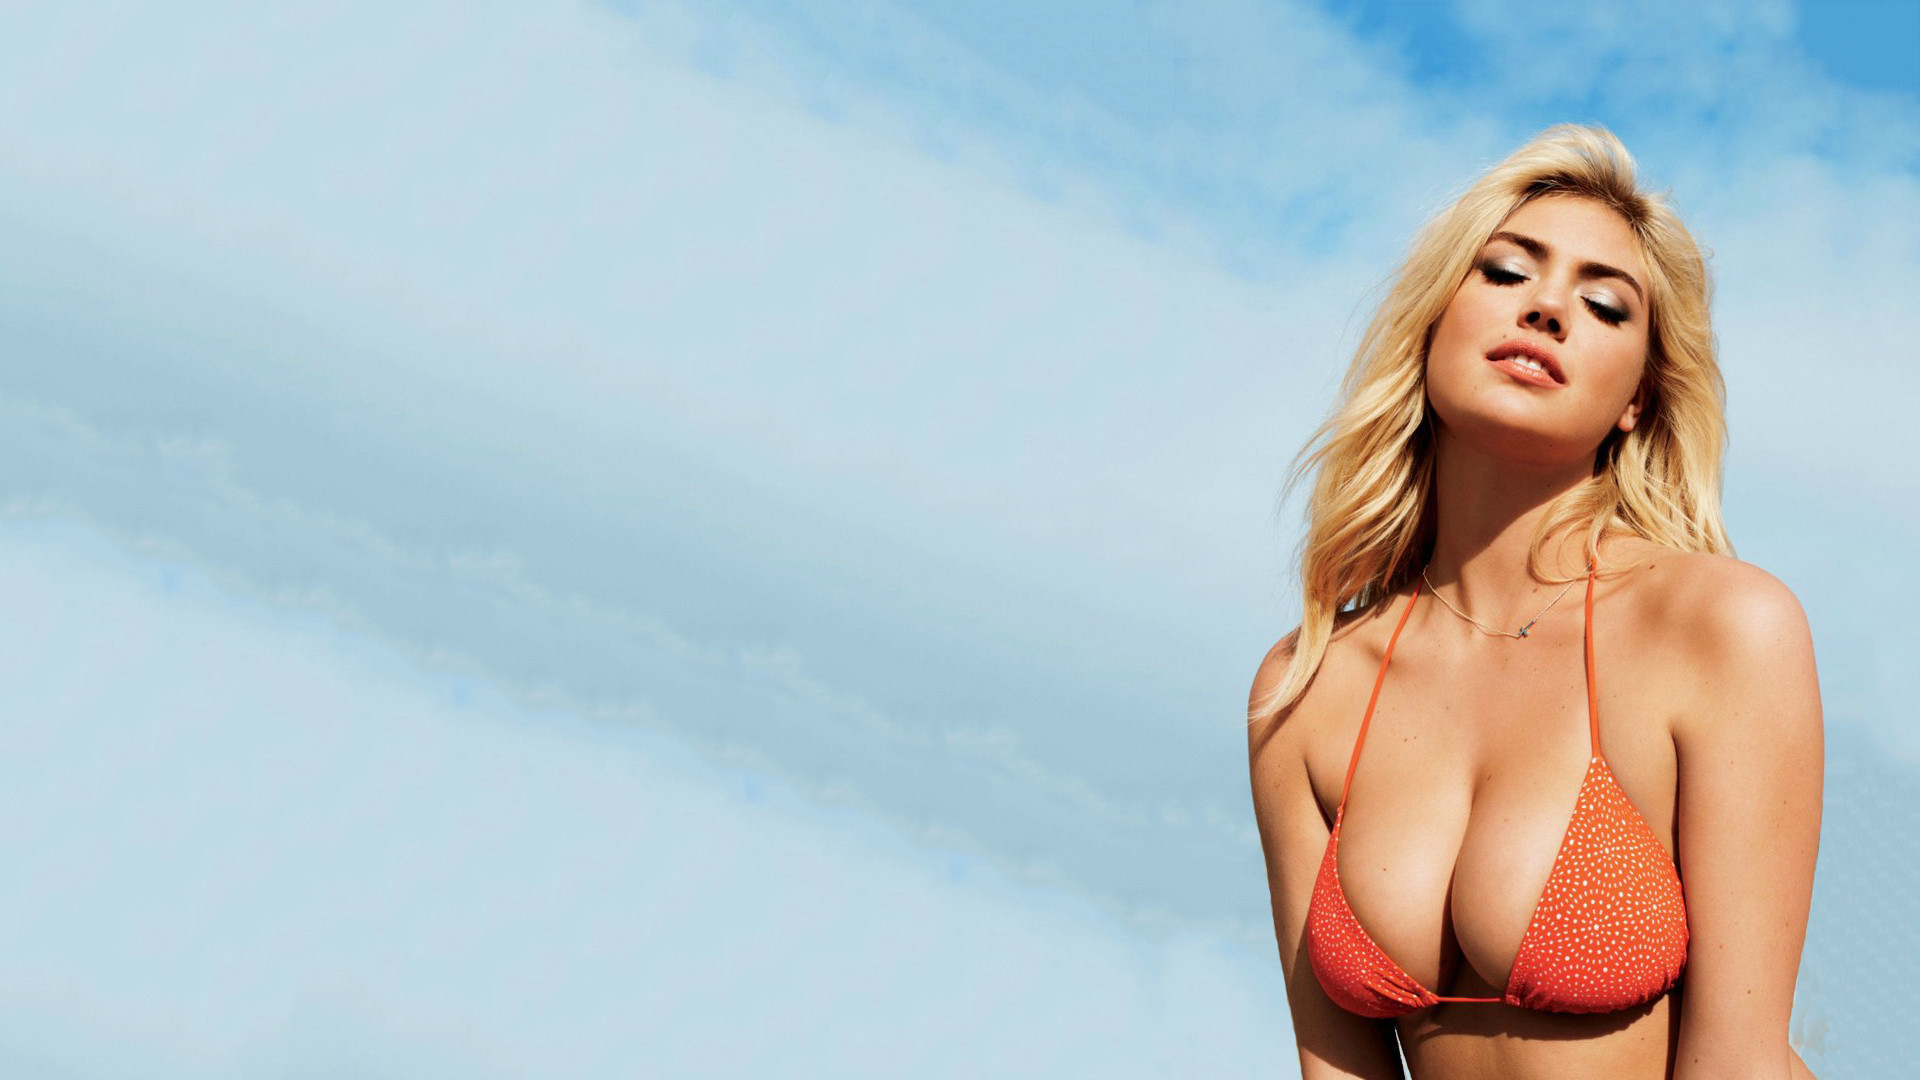 kate upton wallpaper 1920x1080